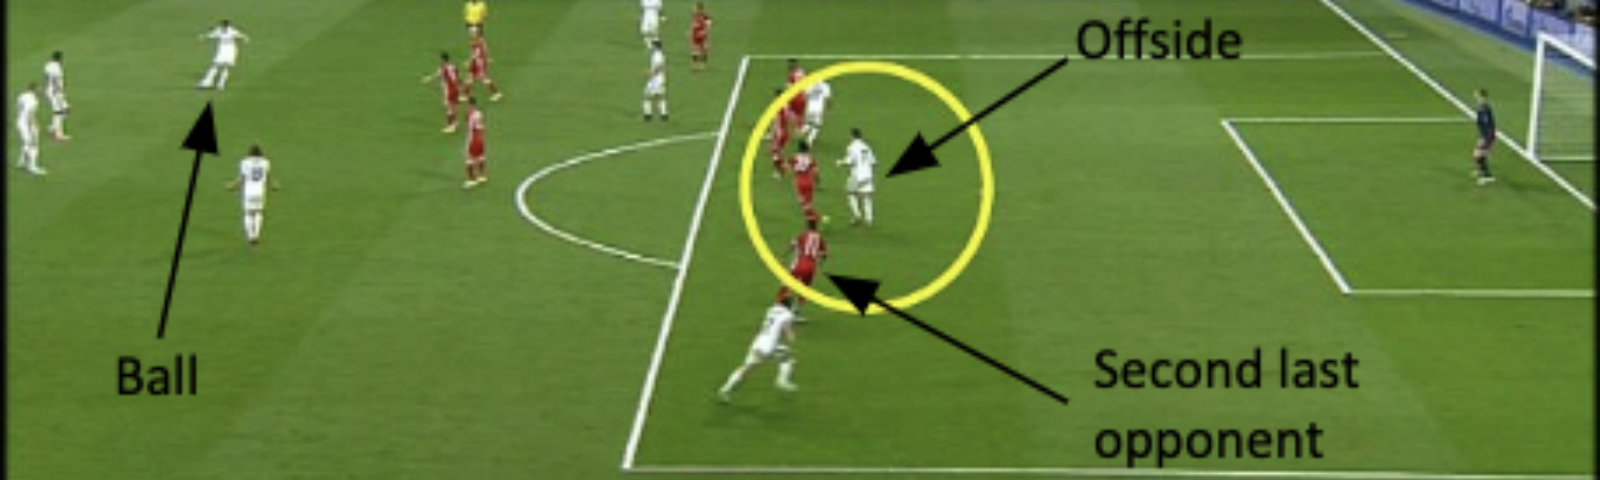 The Offside Rule Demystified. Well it's often said that football…   by Deepanshu Pathak   Atomicl   Medium